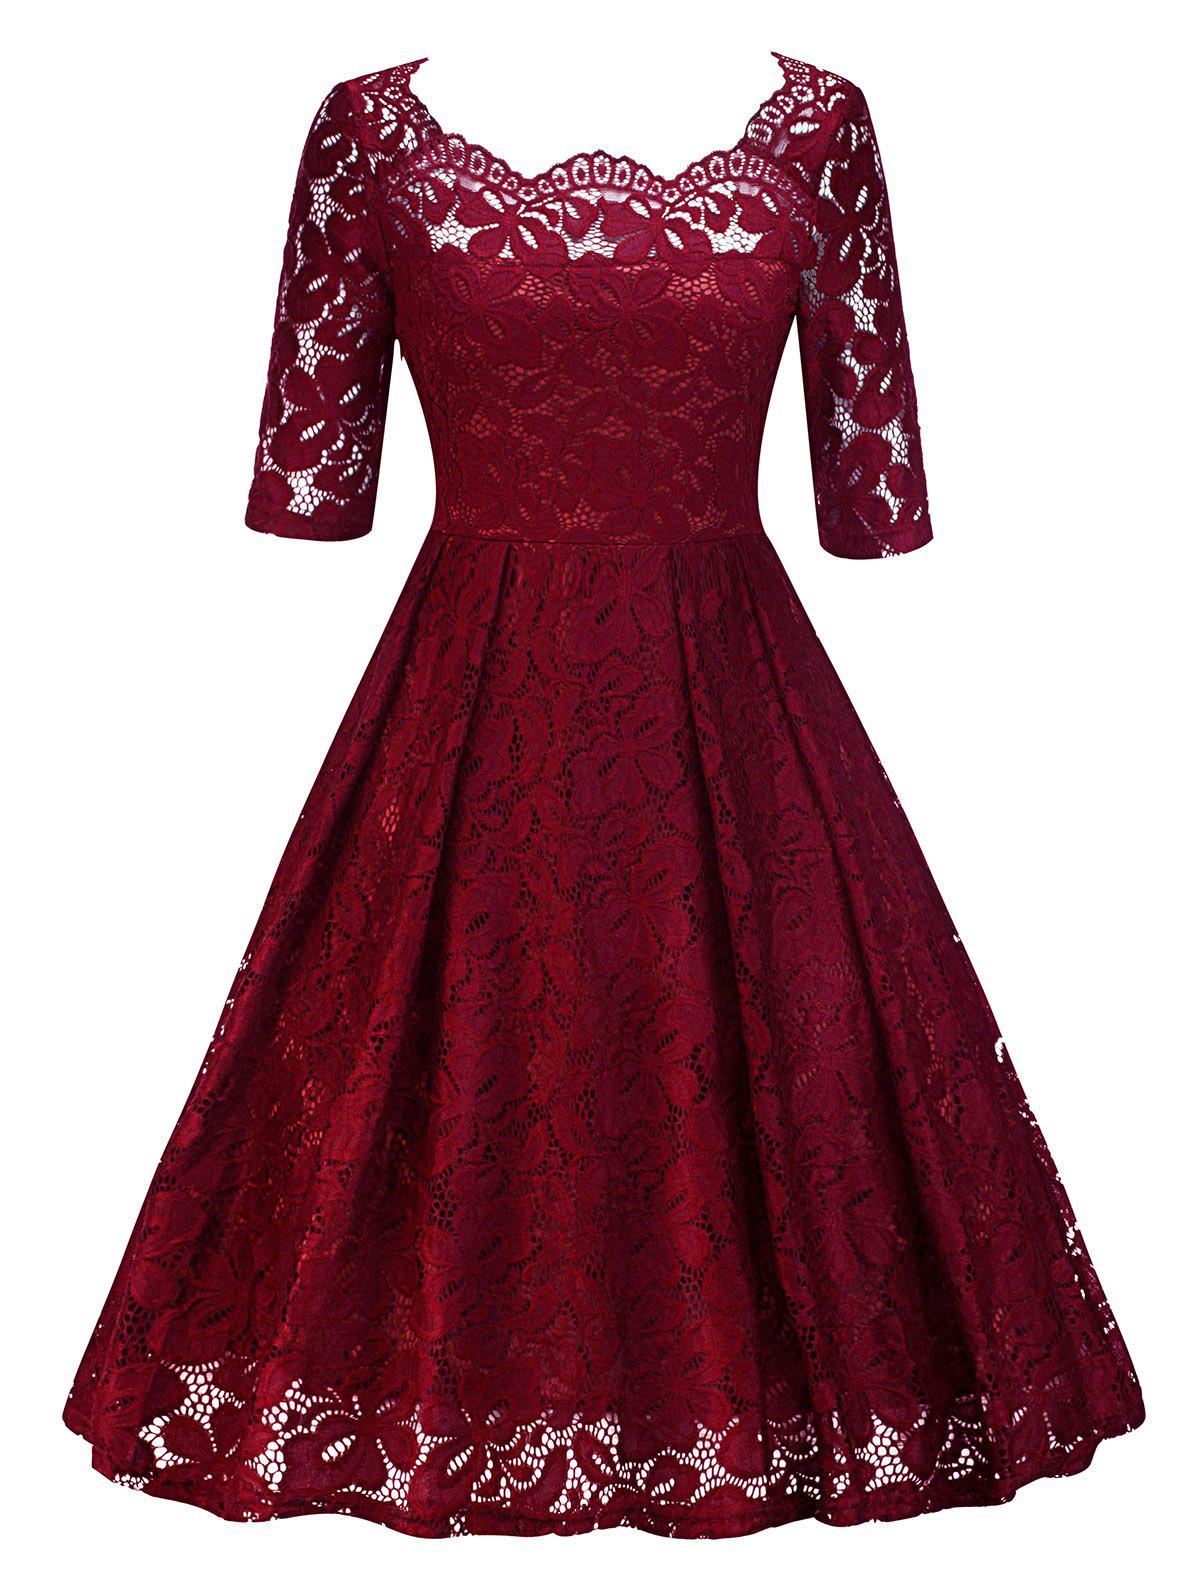 Retro Lace Party Pin Up Dress - WINE RED S